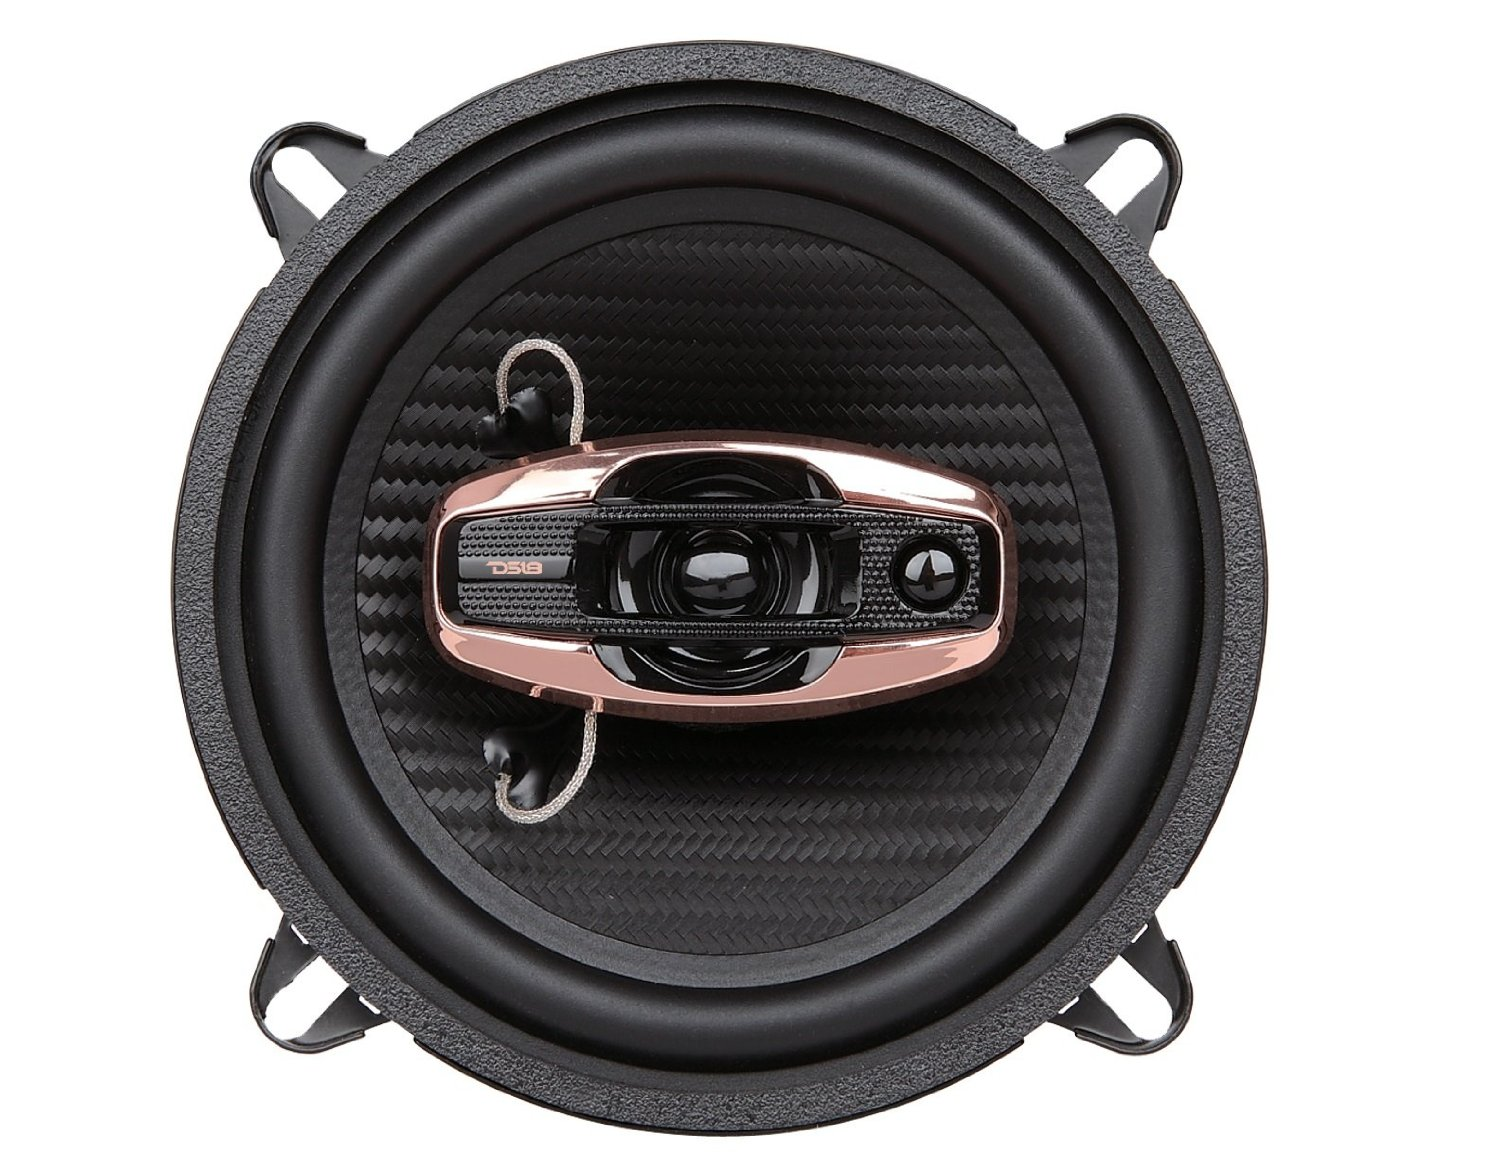 DS18 BD-G5254 DS18 BL4CK DI4MOND Series BD-G5254 5.25-Inch 3-Way 300 Watts Coaxial Speakers - Set of 2